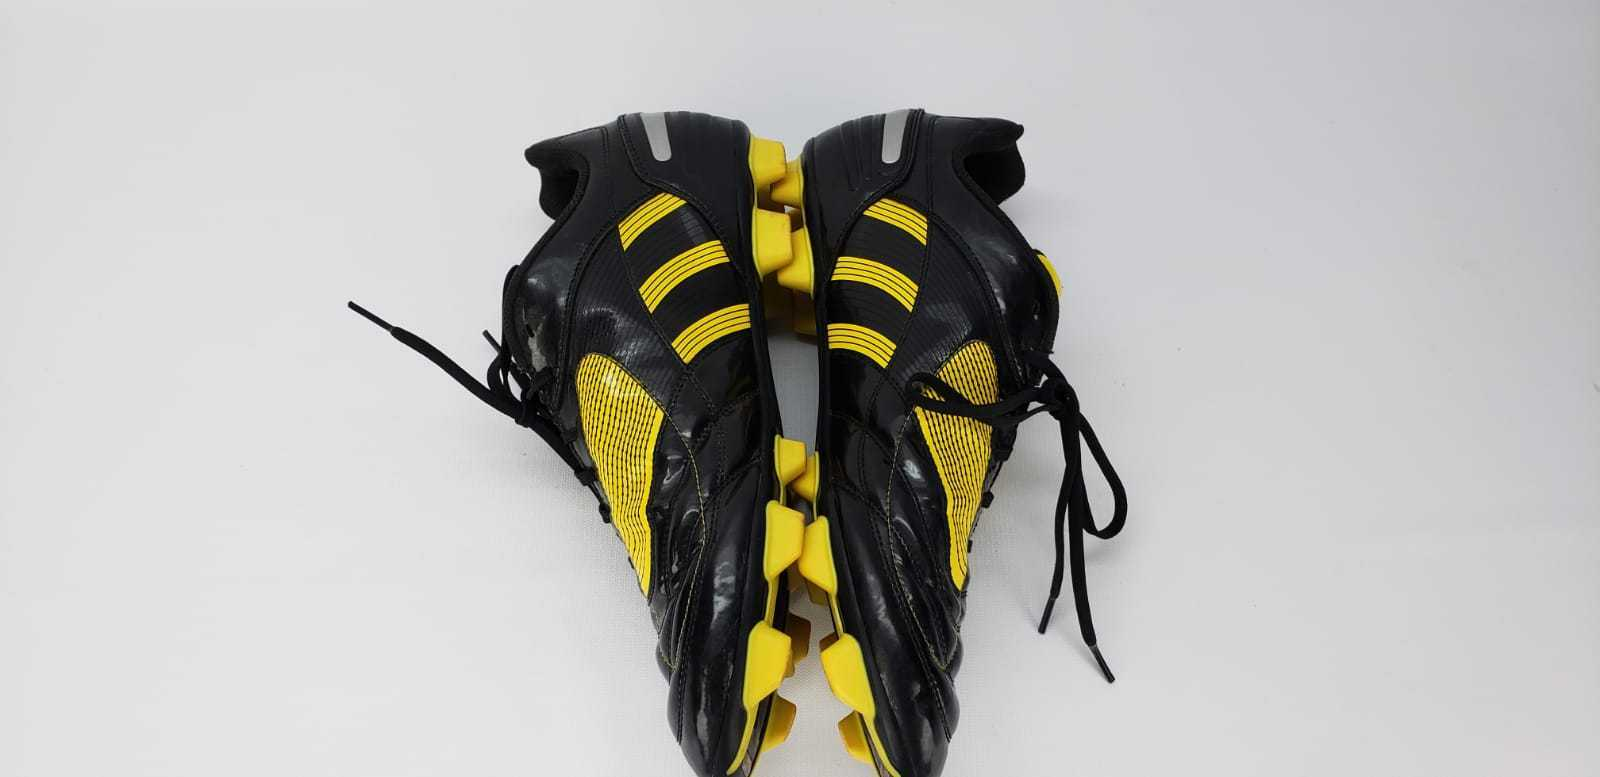 les crampons d'adidas traxion hommes jaune / / / noir taille 13 ccaa37